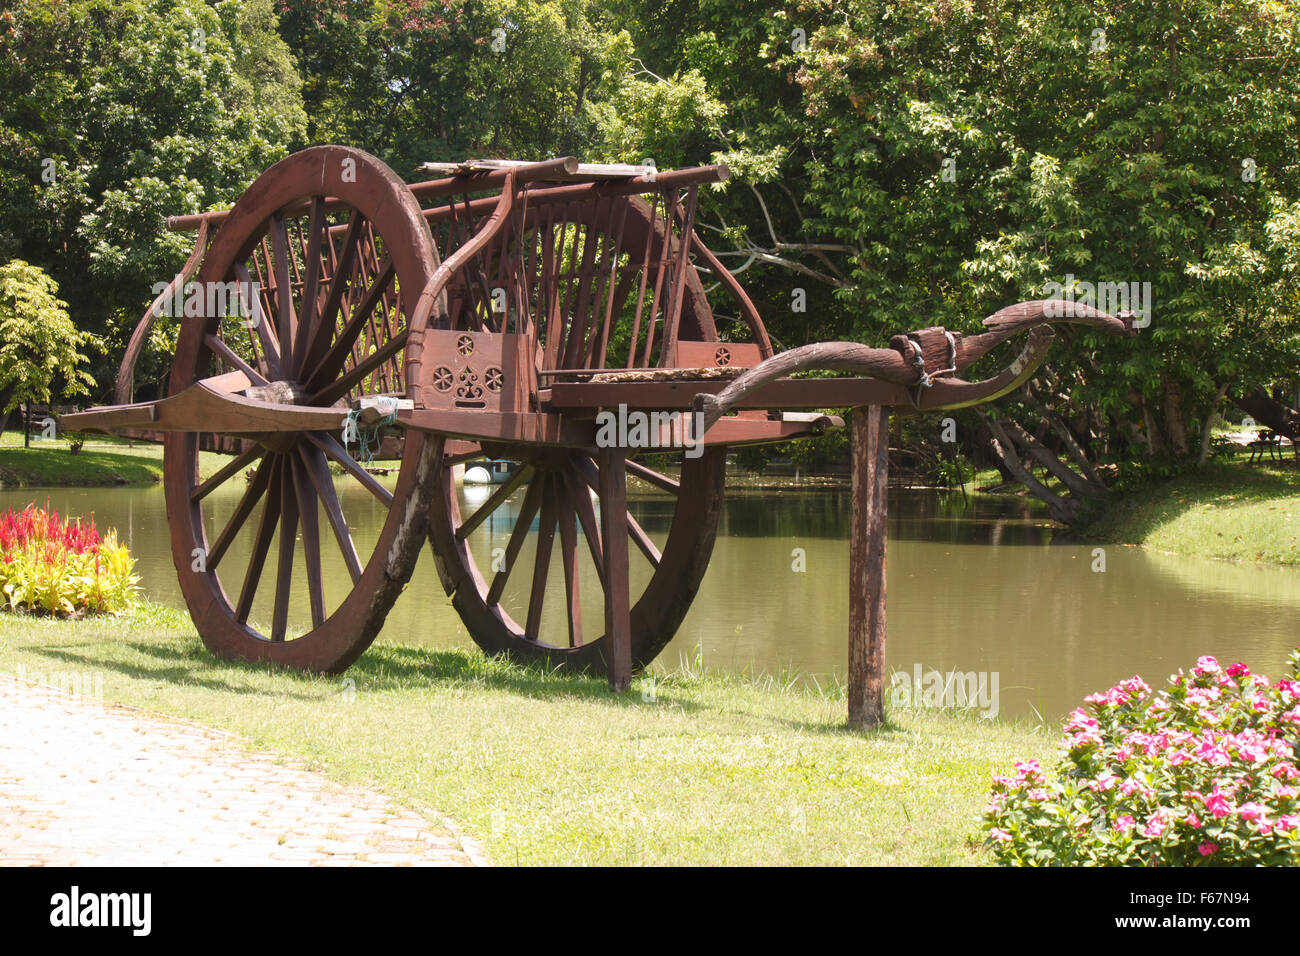 Old Wagon Wheel Flowers In Stock Photos & Old Wagon Wheel Flowers In ...